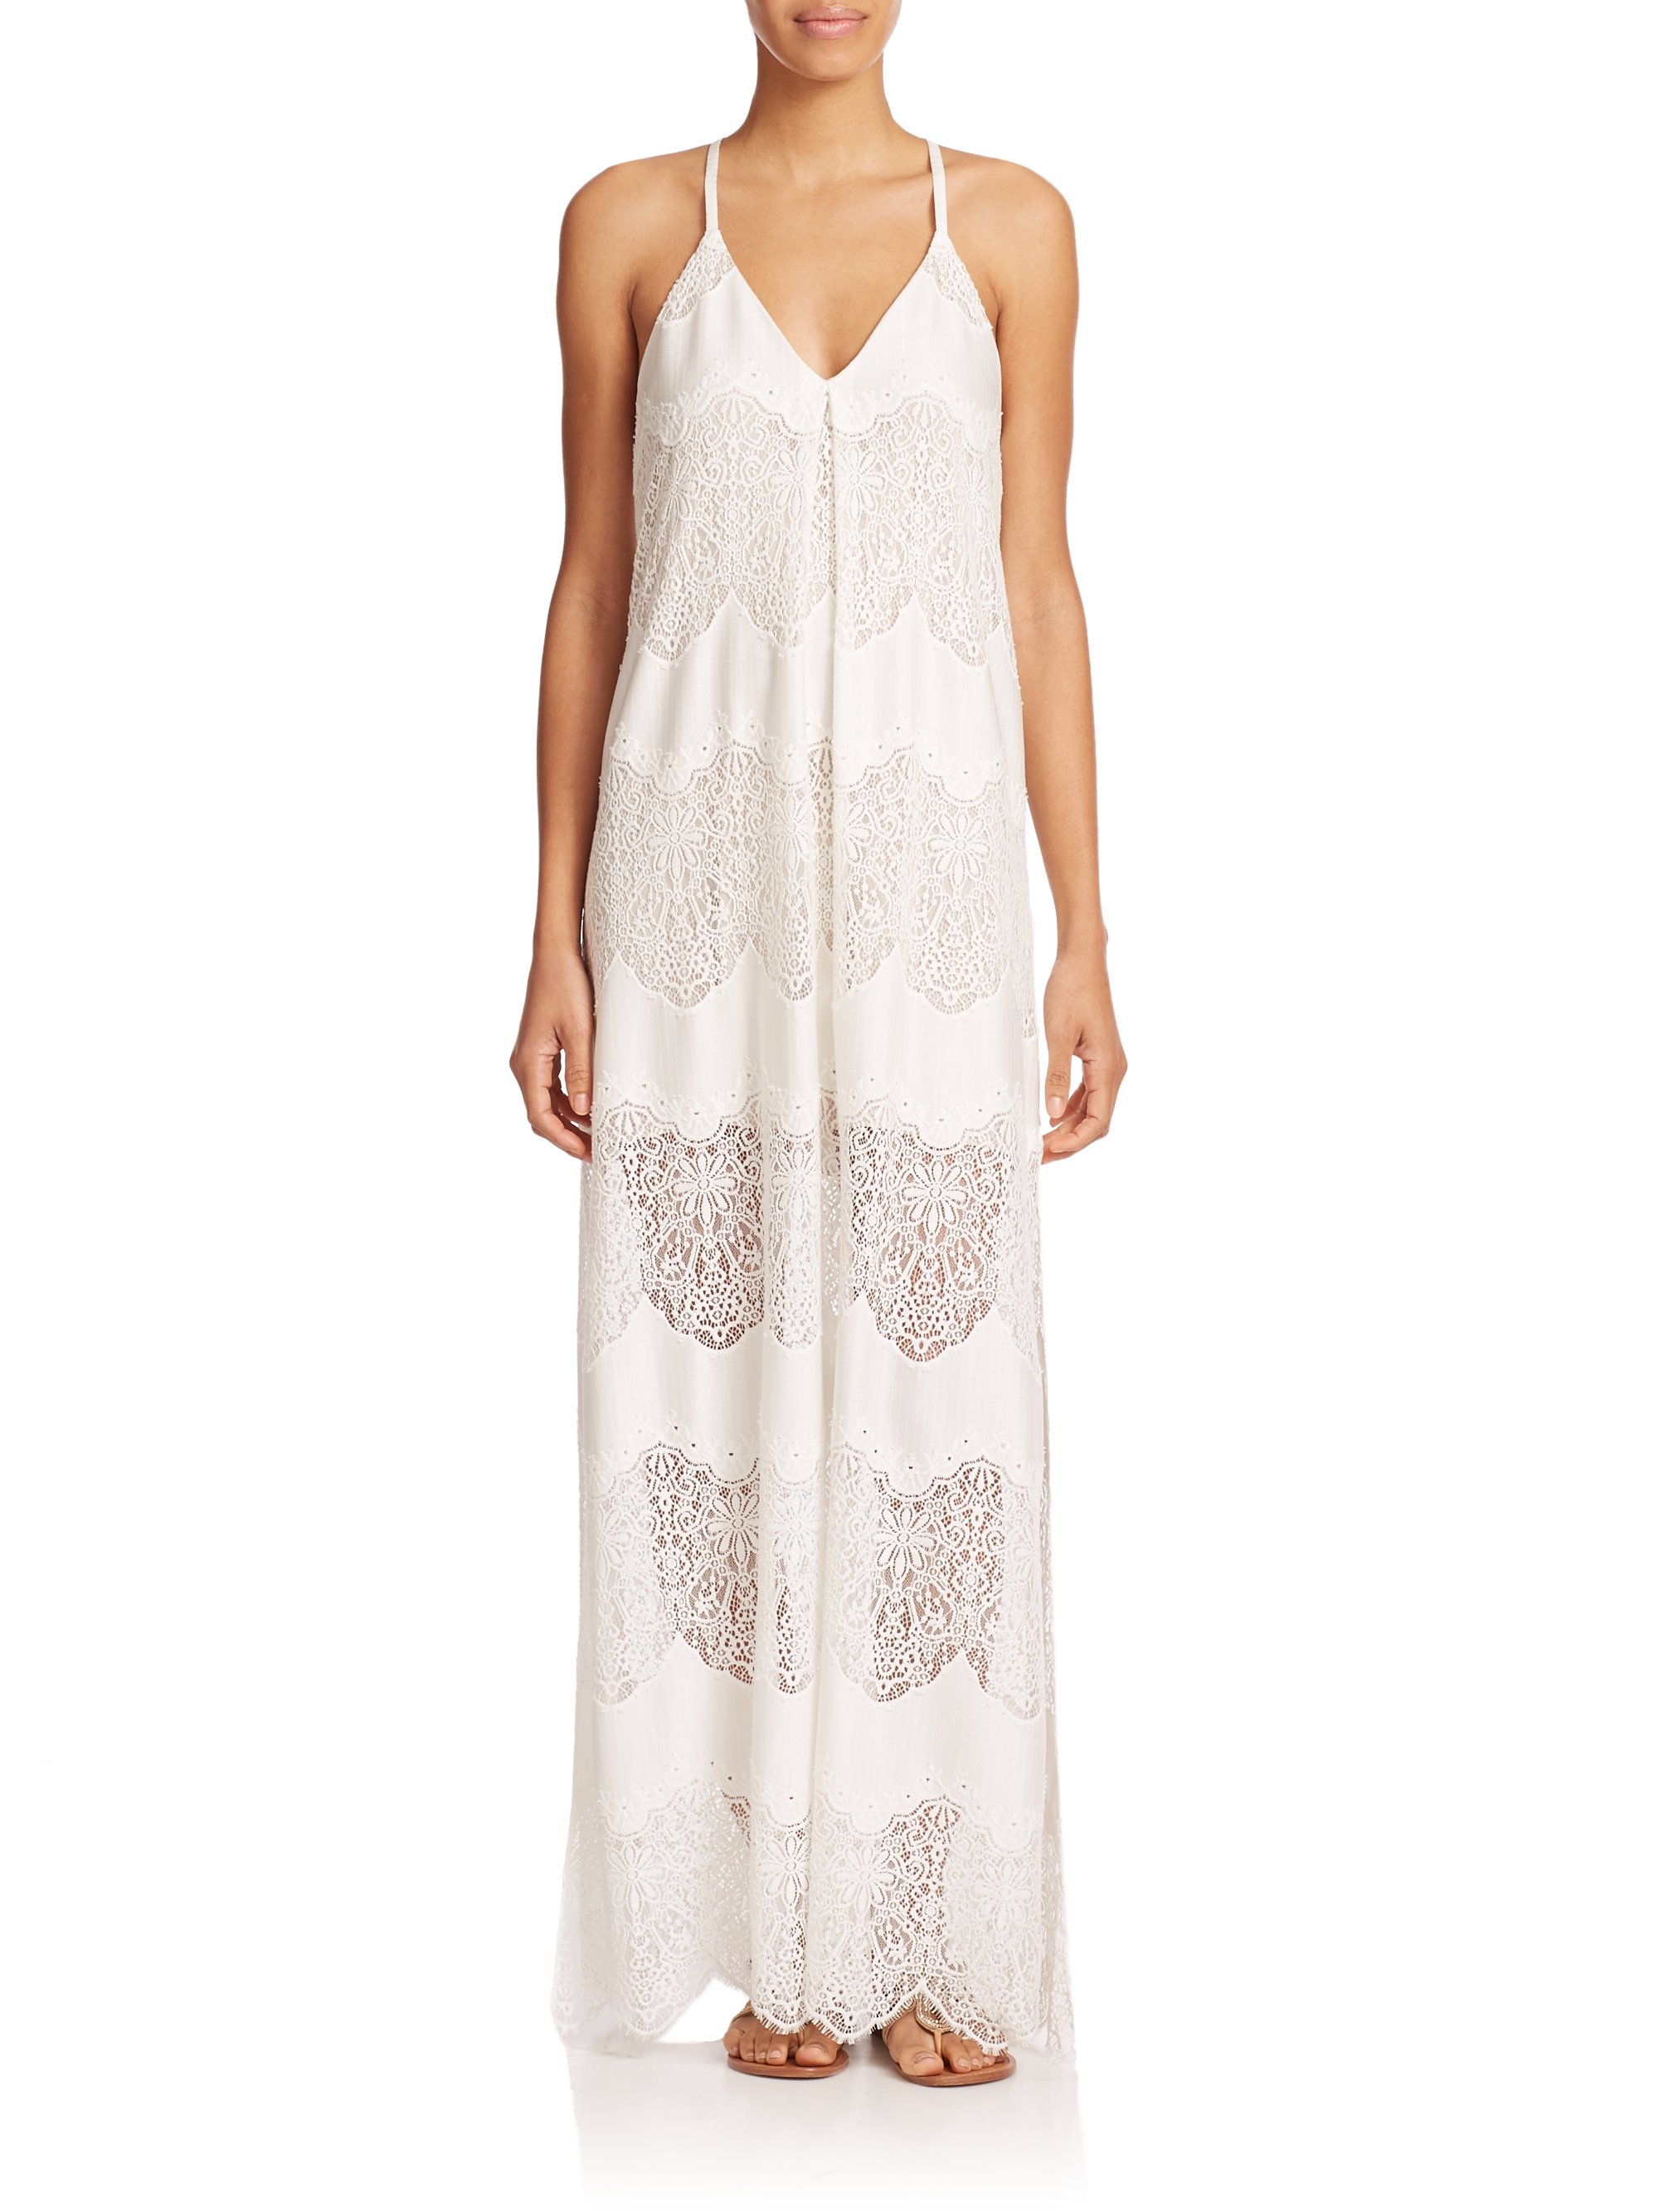 Alice   olivia Vandy Lace Maxi Dress in White | Lyst